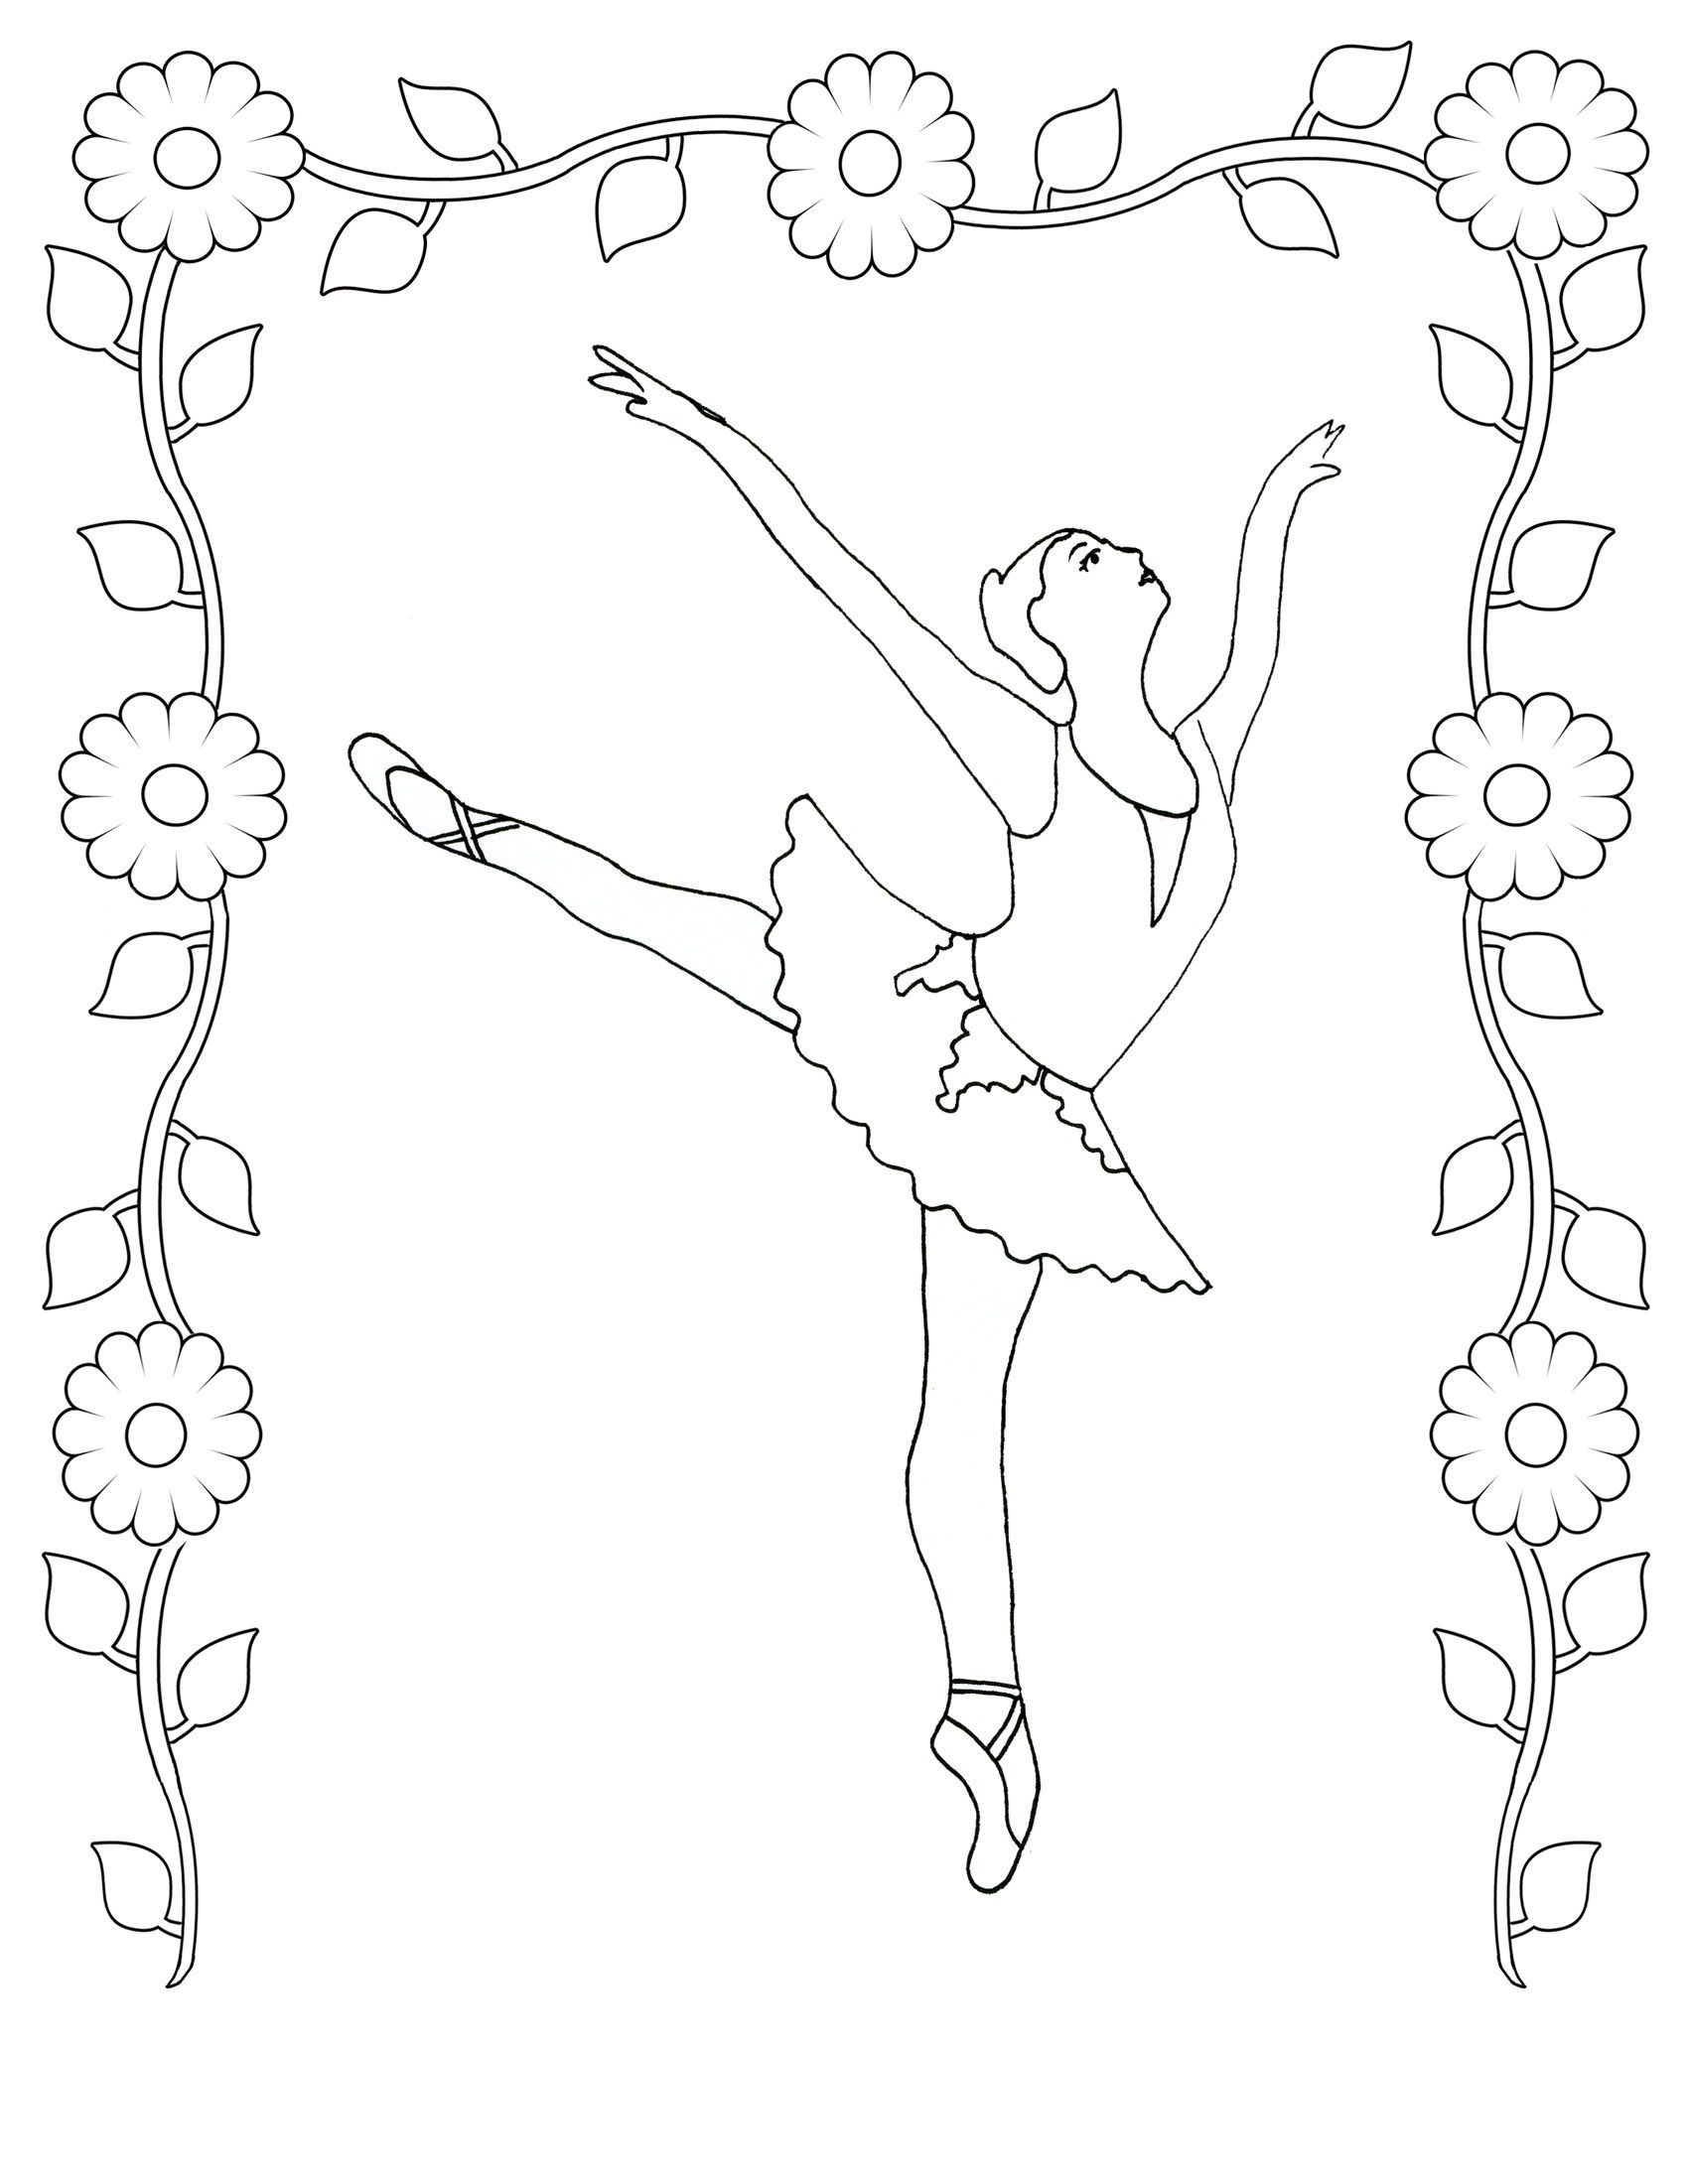 Uncategorized Ballerina Colouring Page coloring pages realistic ballet colouring angelina ballerina dancer pages